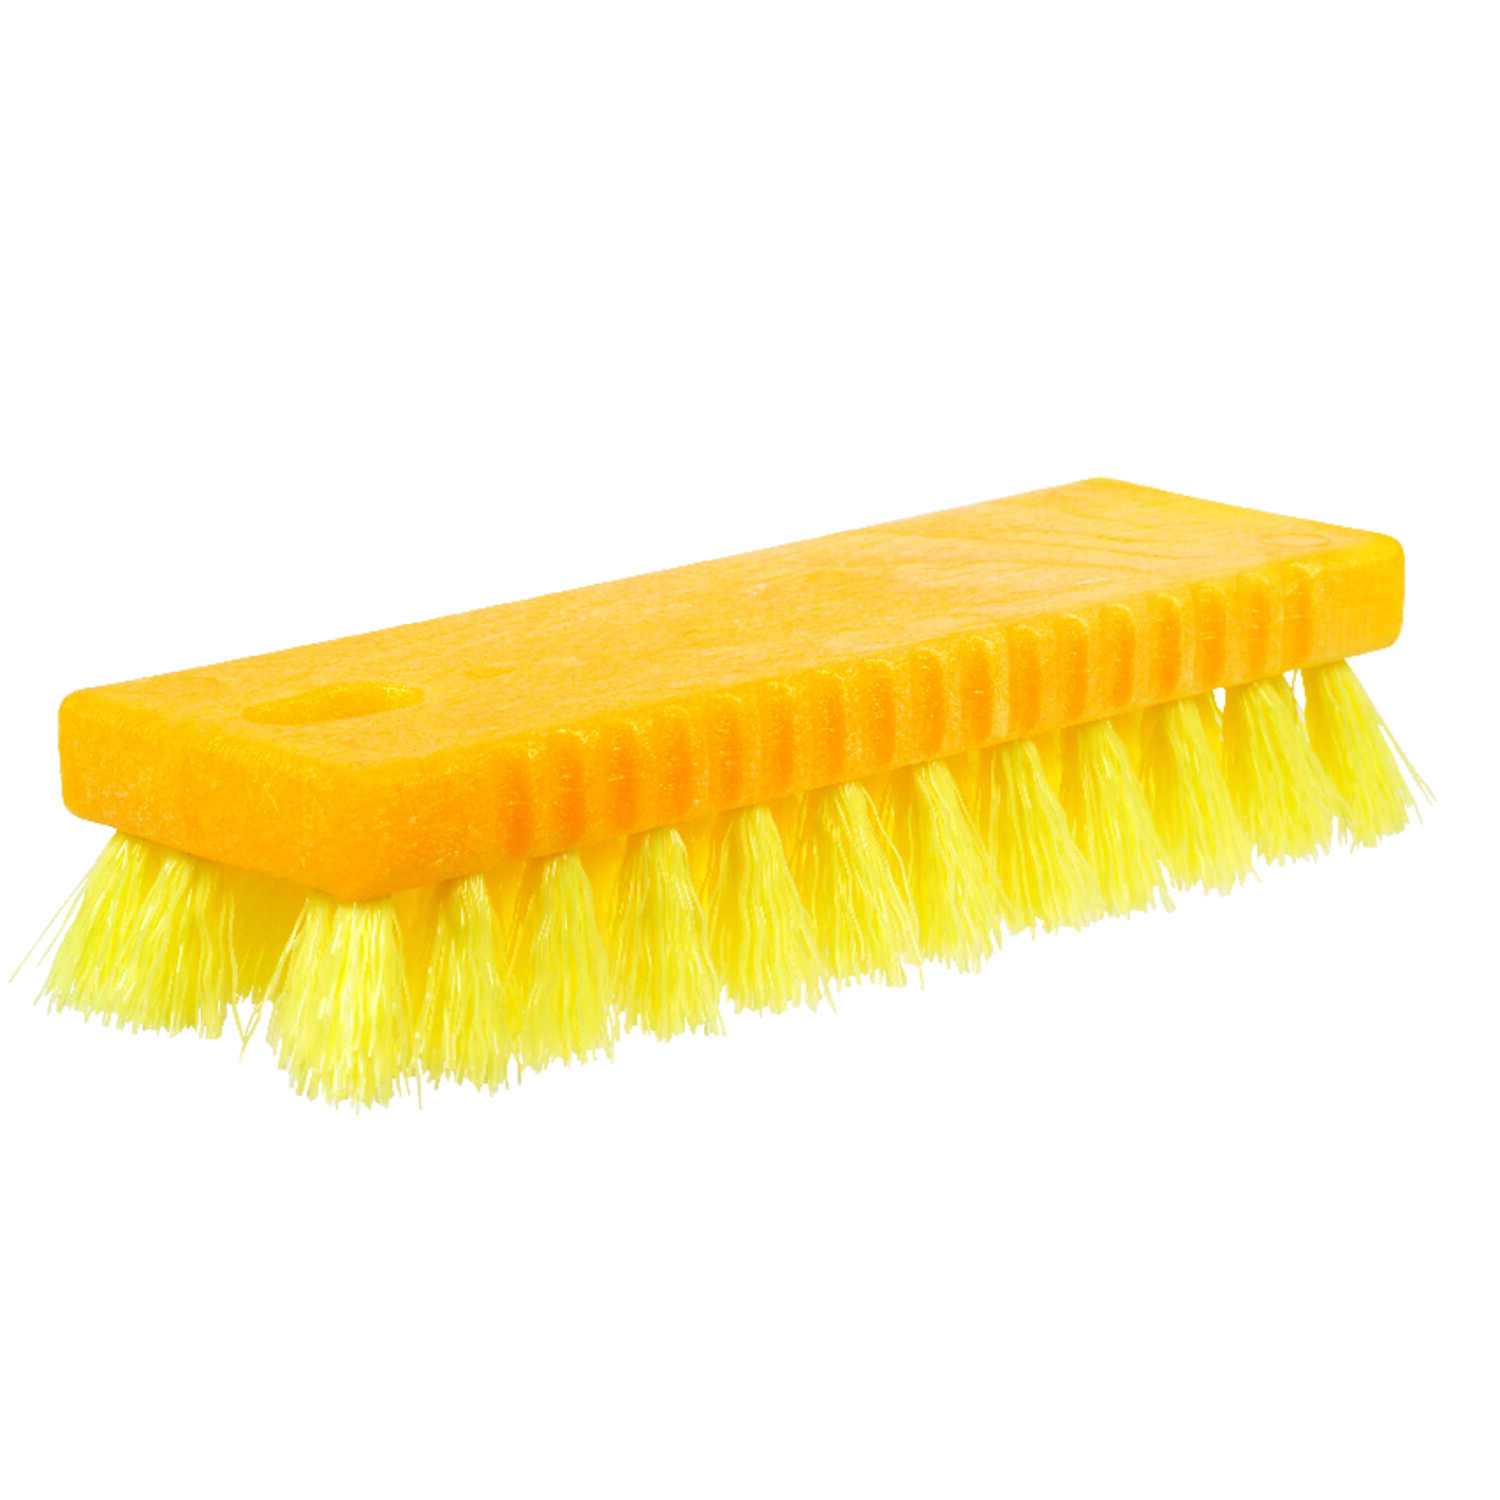 Rubbermaid  2.25 in. W Scrub Brush  Plastic